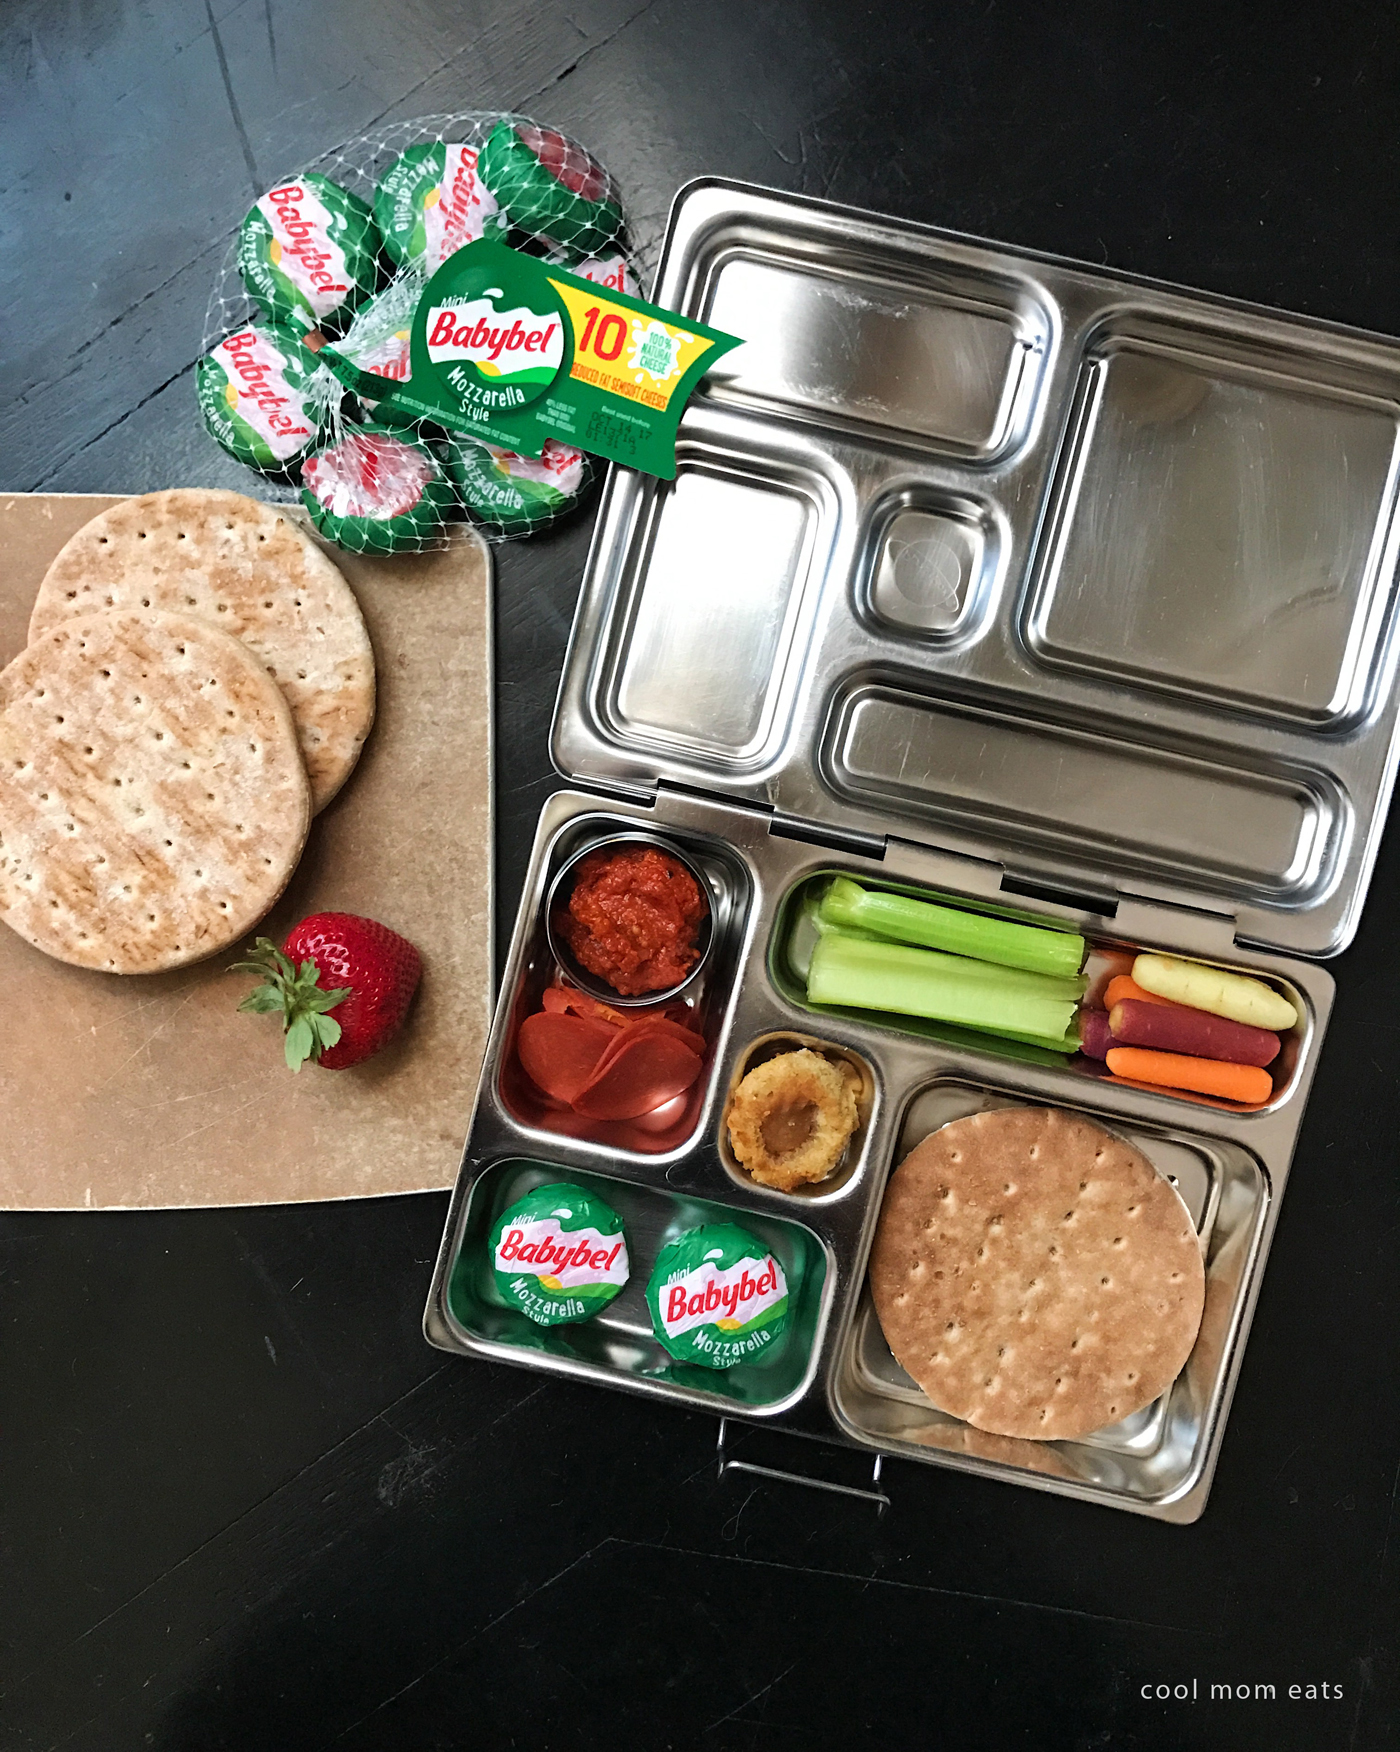 Fun school lunch ideas: Easy Lunch Box Pizza recipe with Mini Babybel | Cool Mom Eats [sponsor]